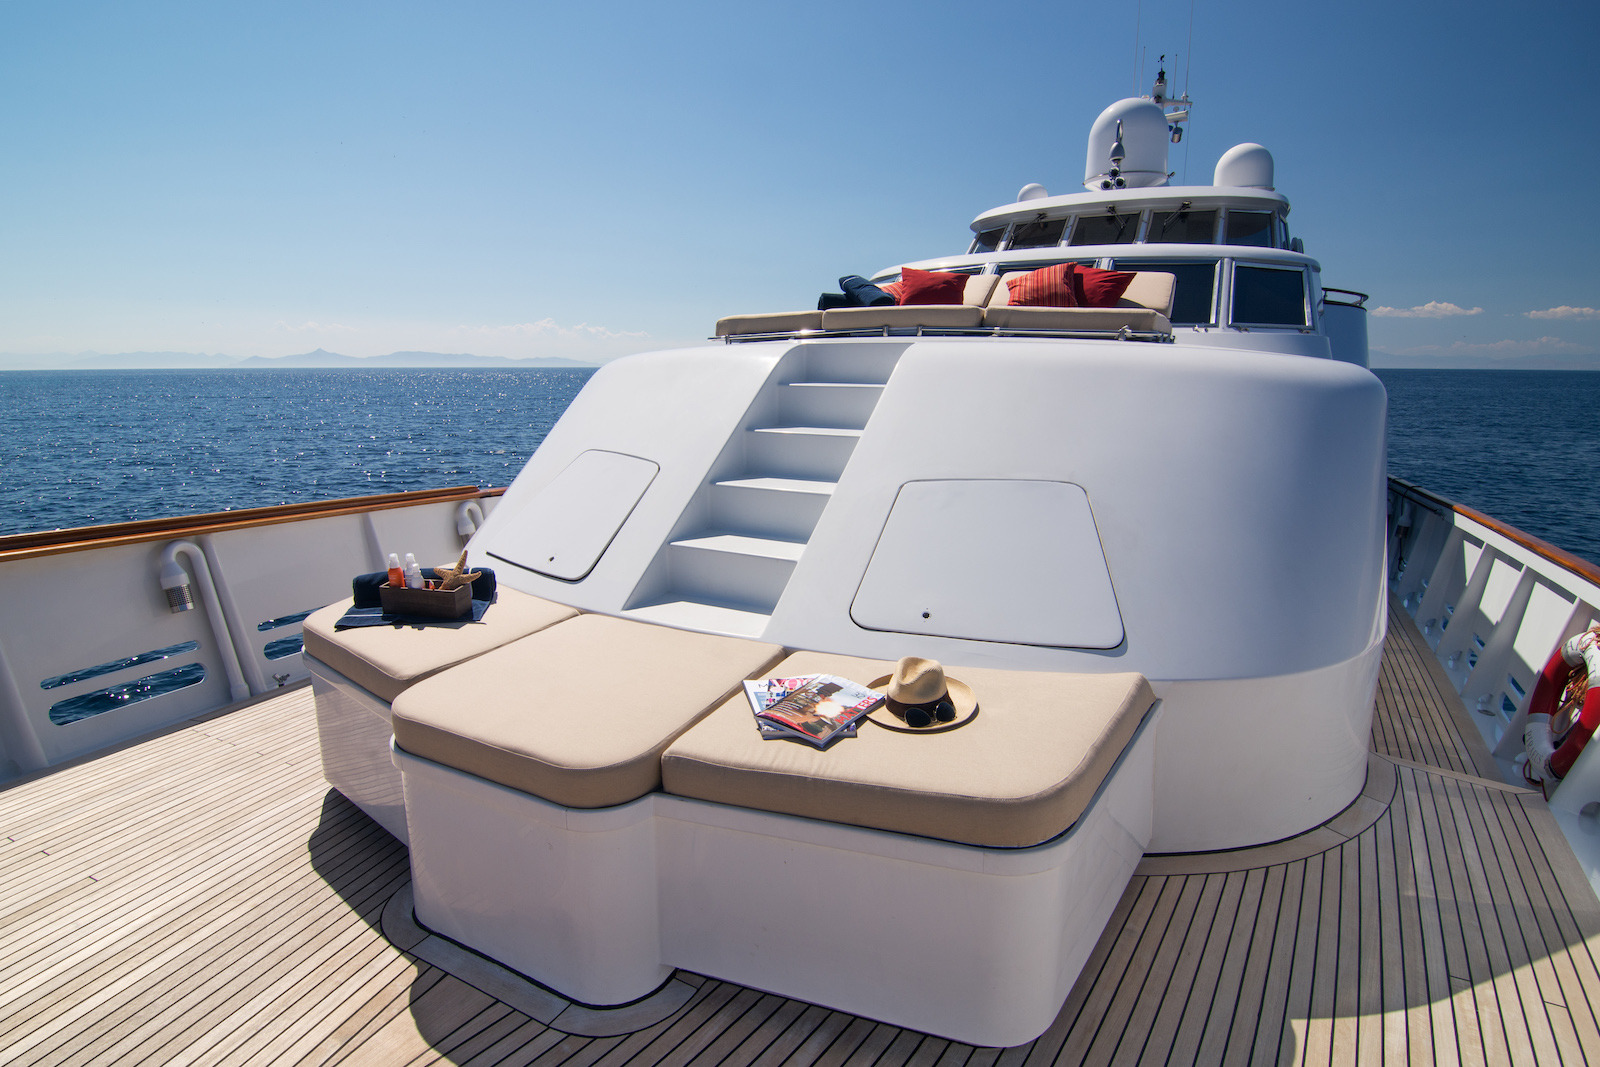 Spacious Foredeck With Seating